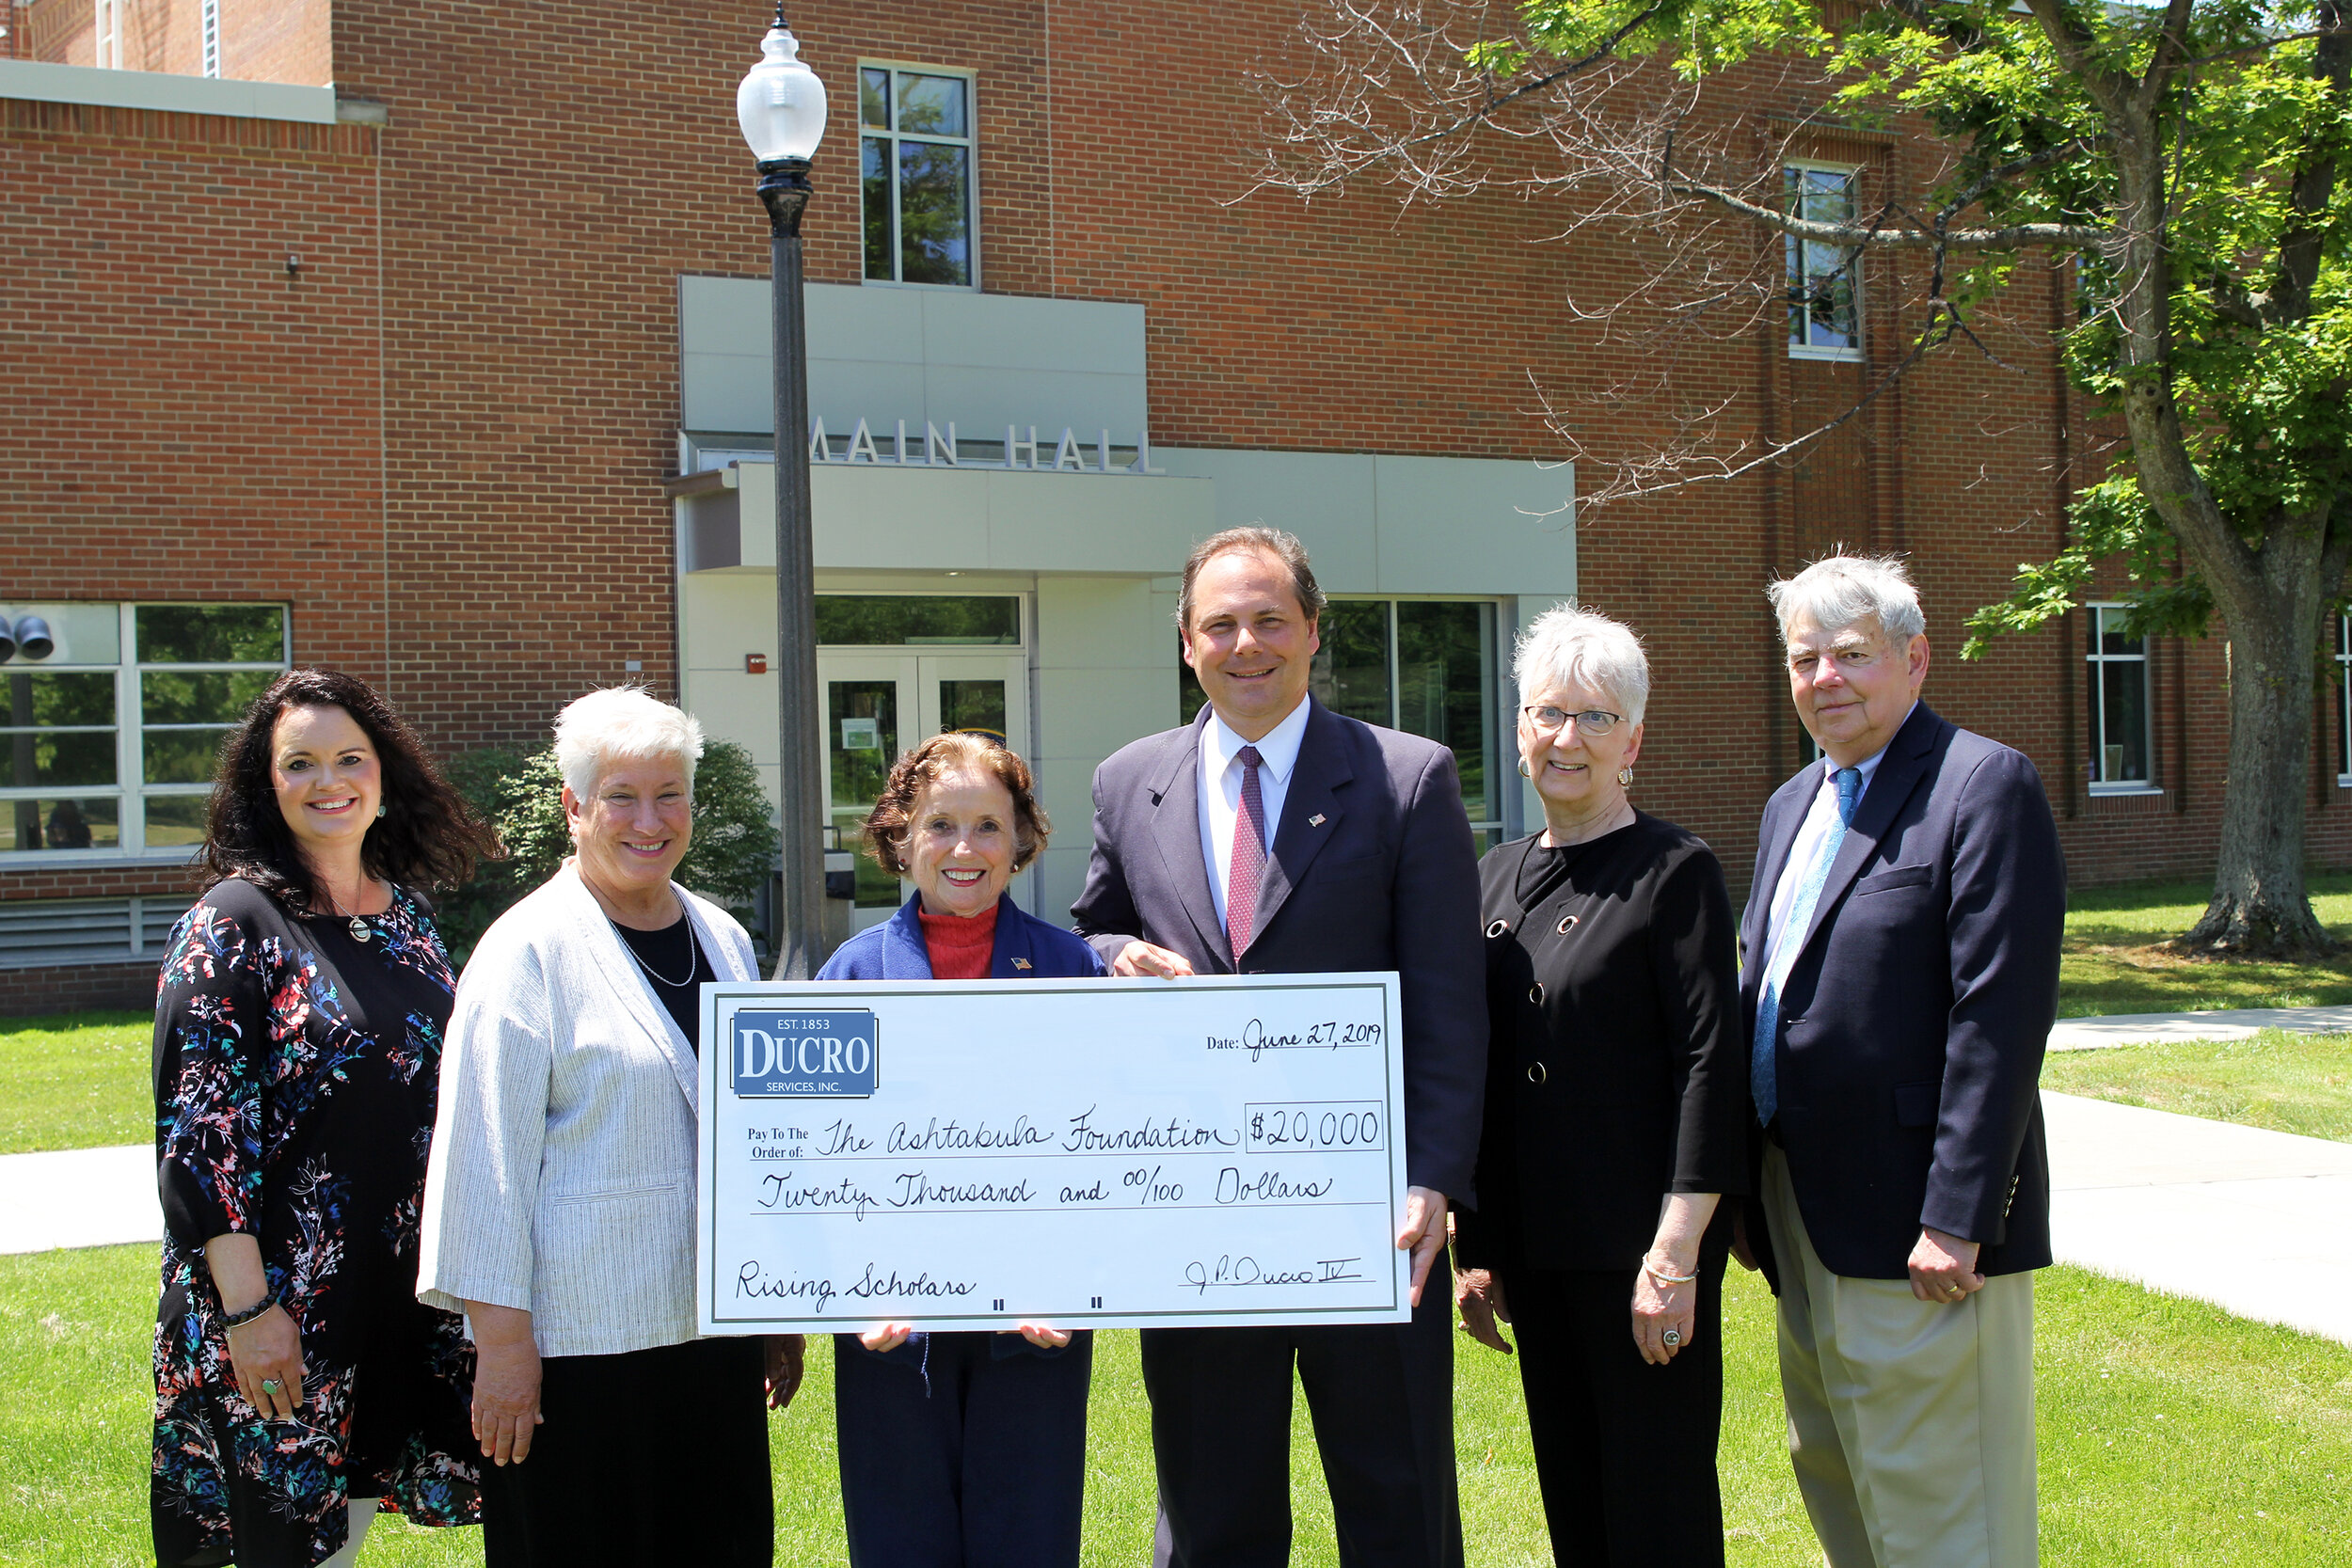 """The Ducro Family recently gave a $20,000 gift to the Ashtabula Foundation for the Kent State Ashtabula Rising Scholars Program Fund. Pictured are (left to right): Kent State Ashtabula Associate Lecturer of Theater and Rising Scholars Coordinator Natalie Huya; Dean and Chief Administrative Officer Dr. Susan J. Stocker; Sue Ducro; J.P. Ducro IV; Ashtabula Foundation Trustee and Past President Cheryle J. Chiaramonte, and Foundation Board Secretary/Treasurer William W. """"Bud"""" Hill."""